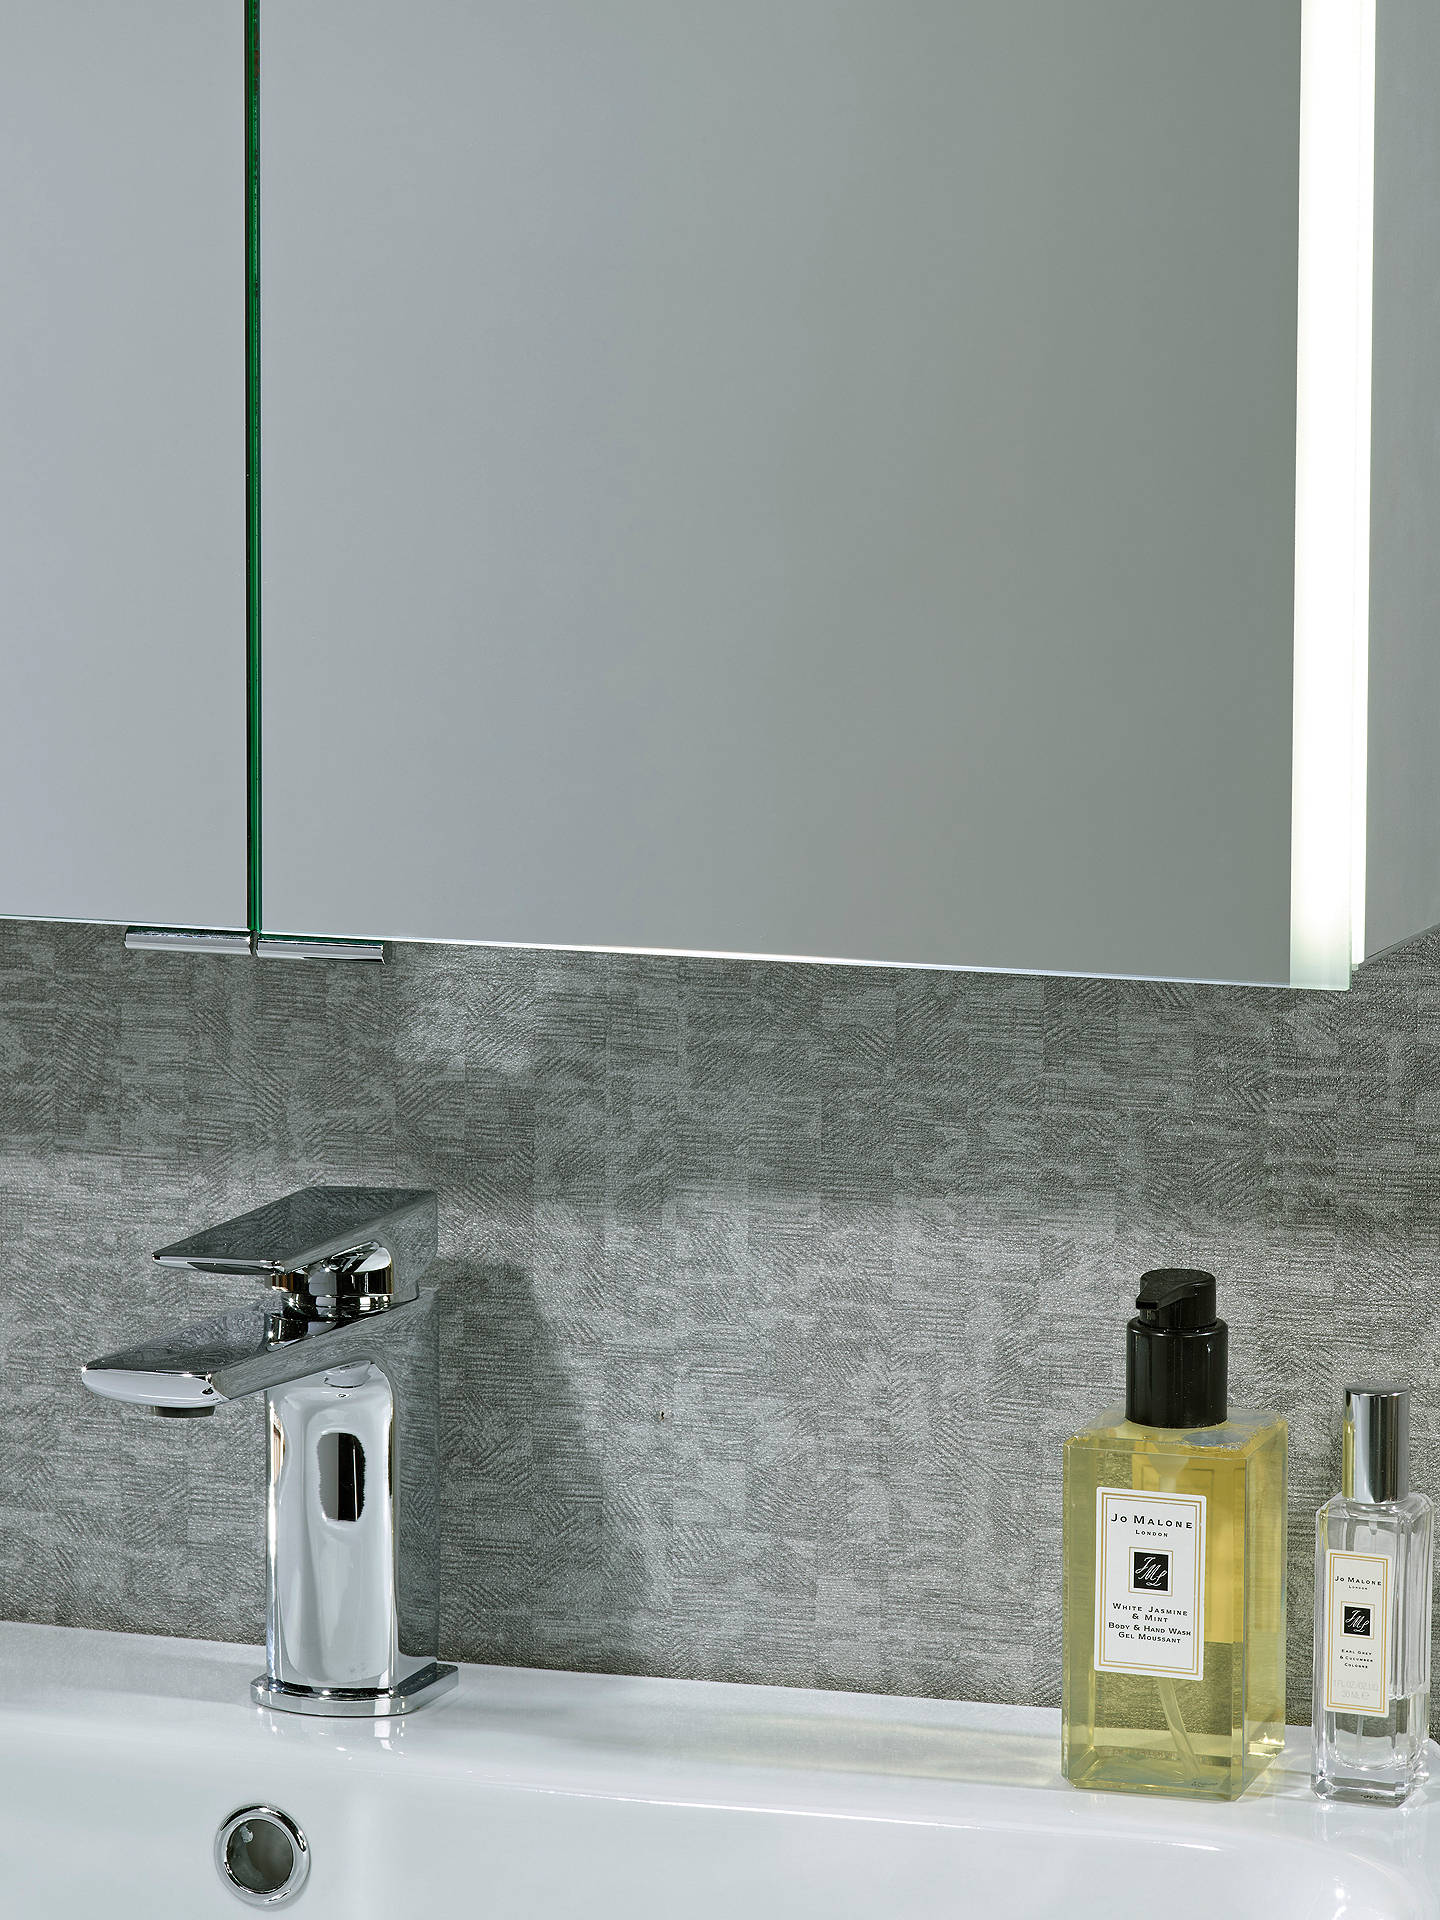 BuyJohn Lewis & Partners LED Trace Double Mirrored Illuminated Bathroom Cabinet Online at johnlewis.com